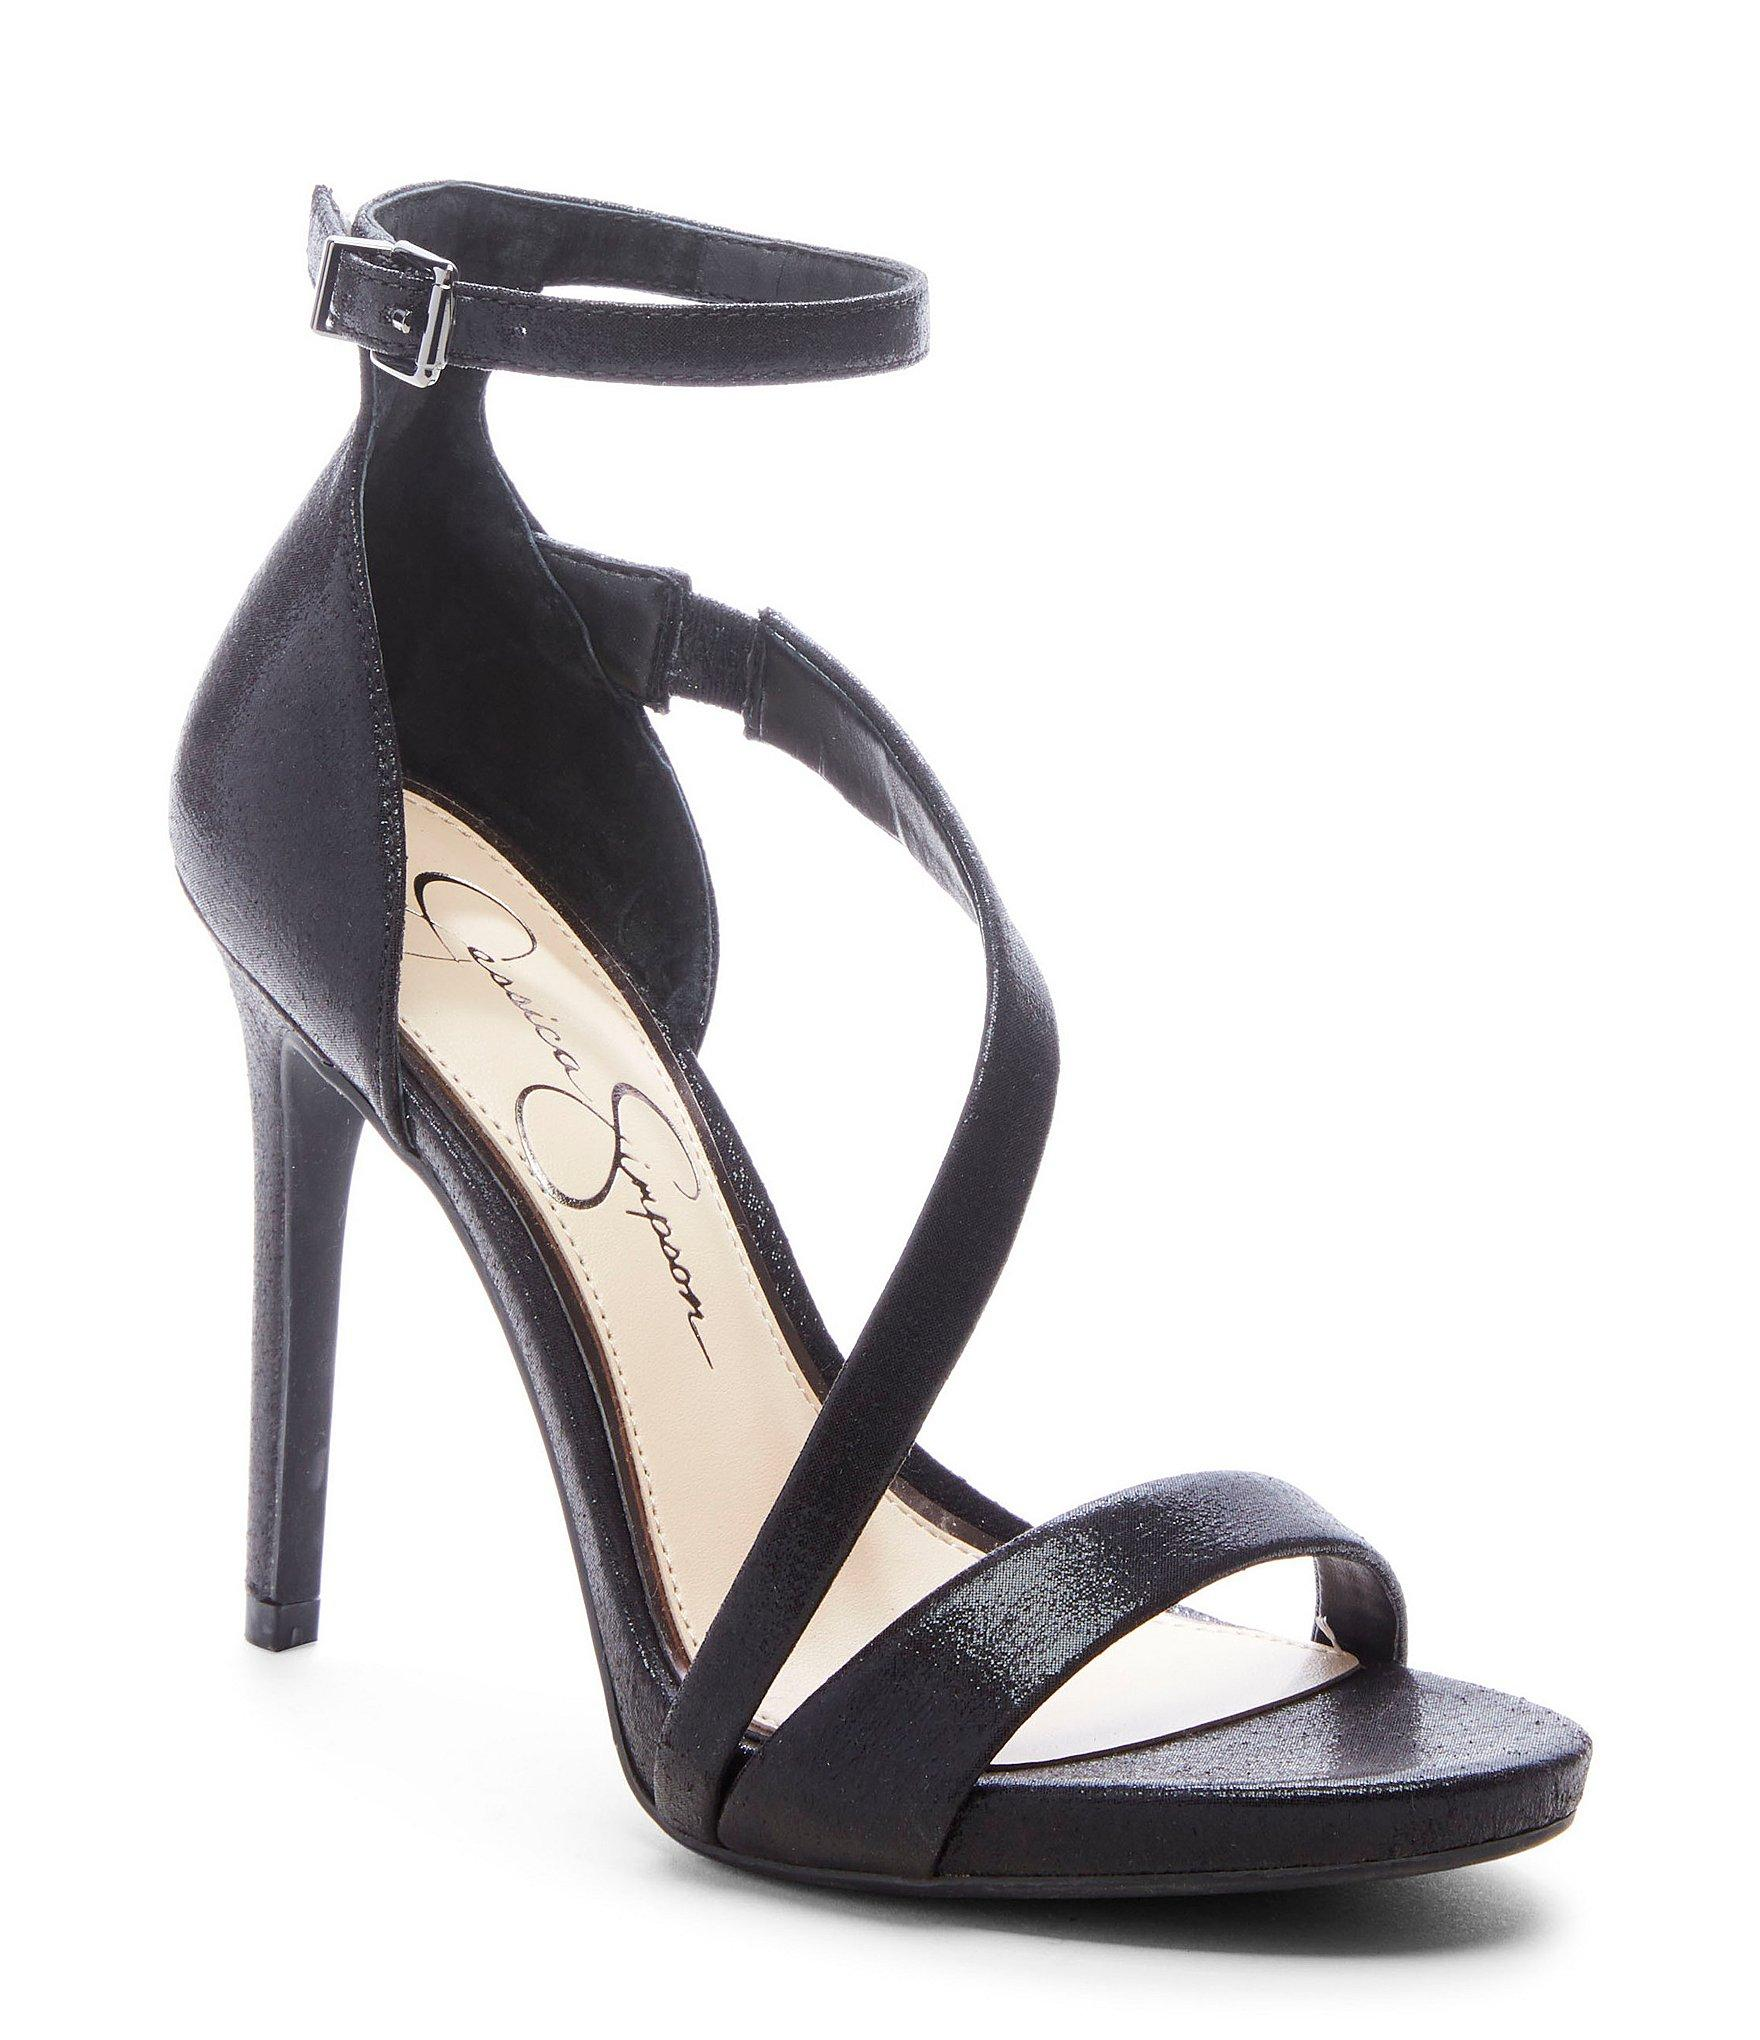 9740be5cc06 Lyst - Jessica Simpson Rayli2 Strappy Dress Sandals in Black